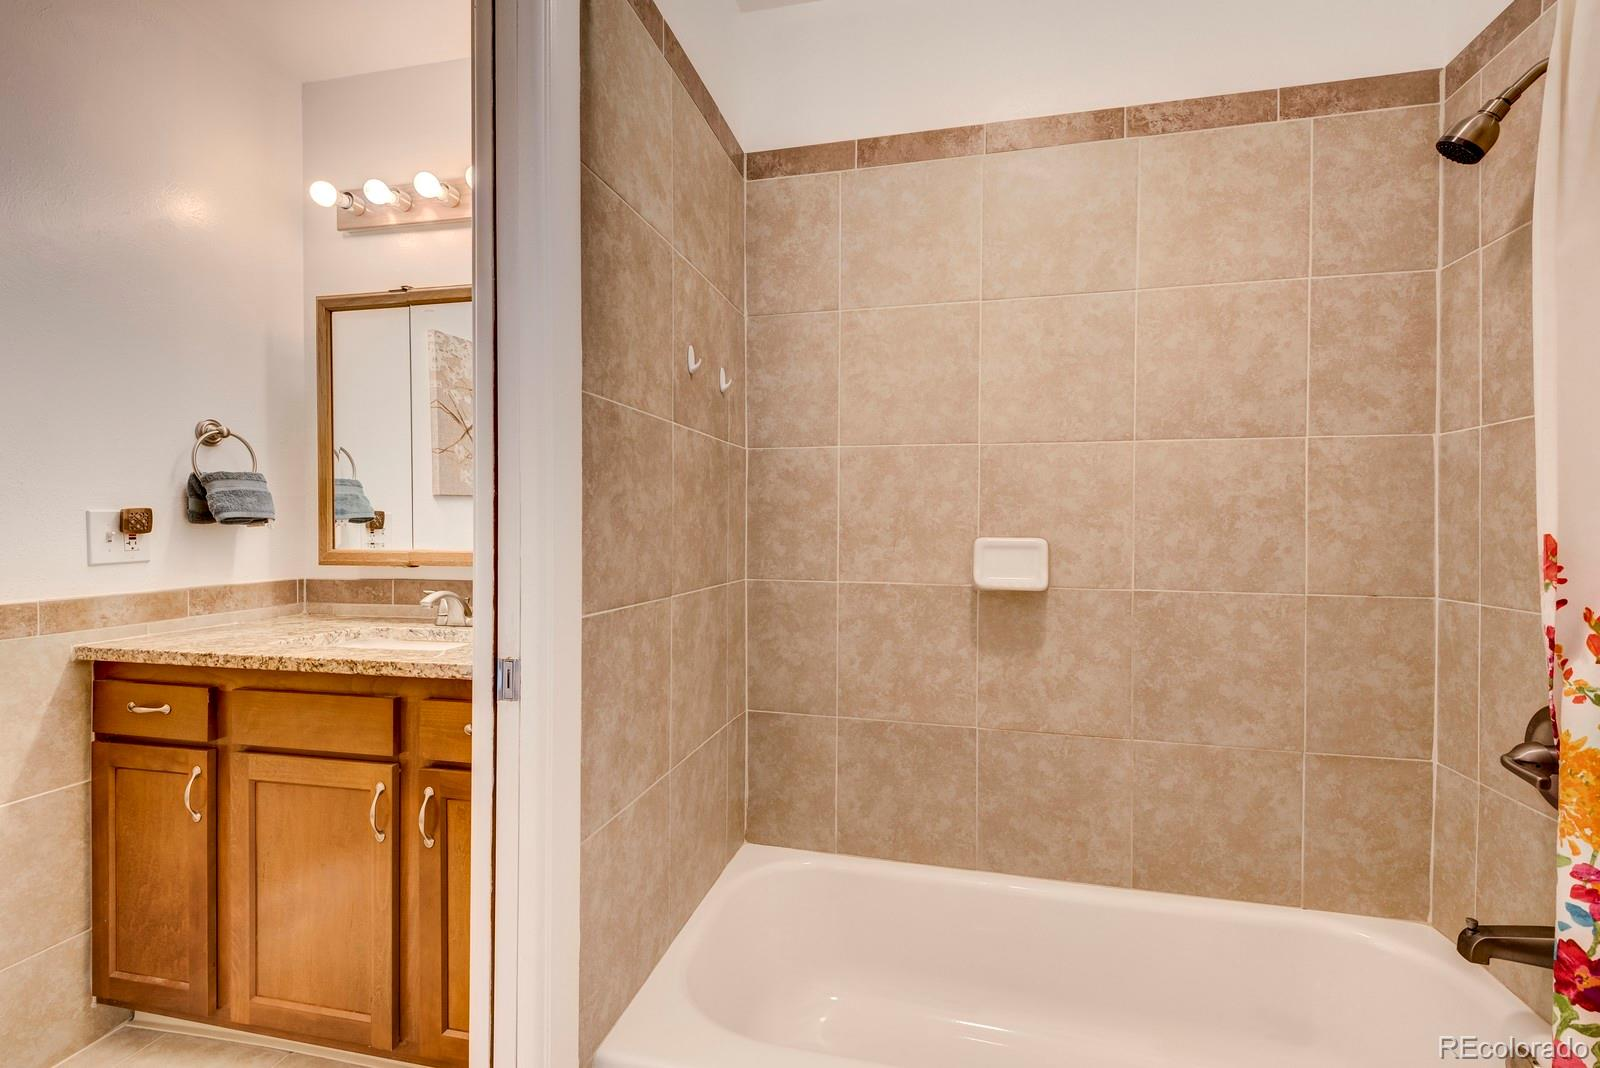 MLS# 2804784 - 12 - 8792 Chase Drive #16, Arvada, CO 80003